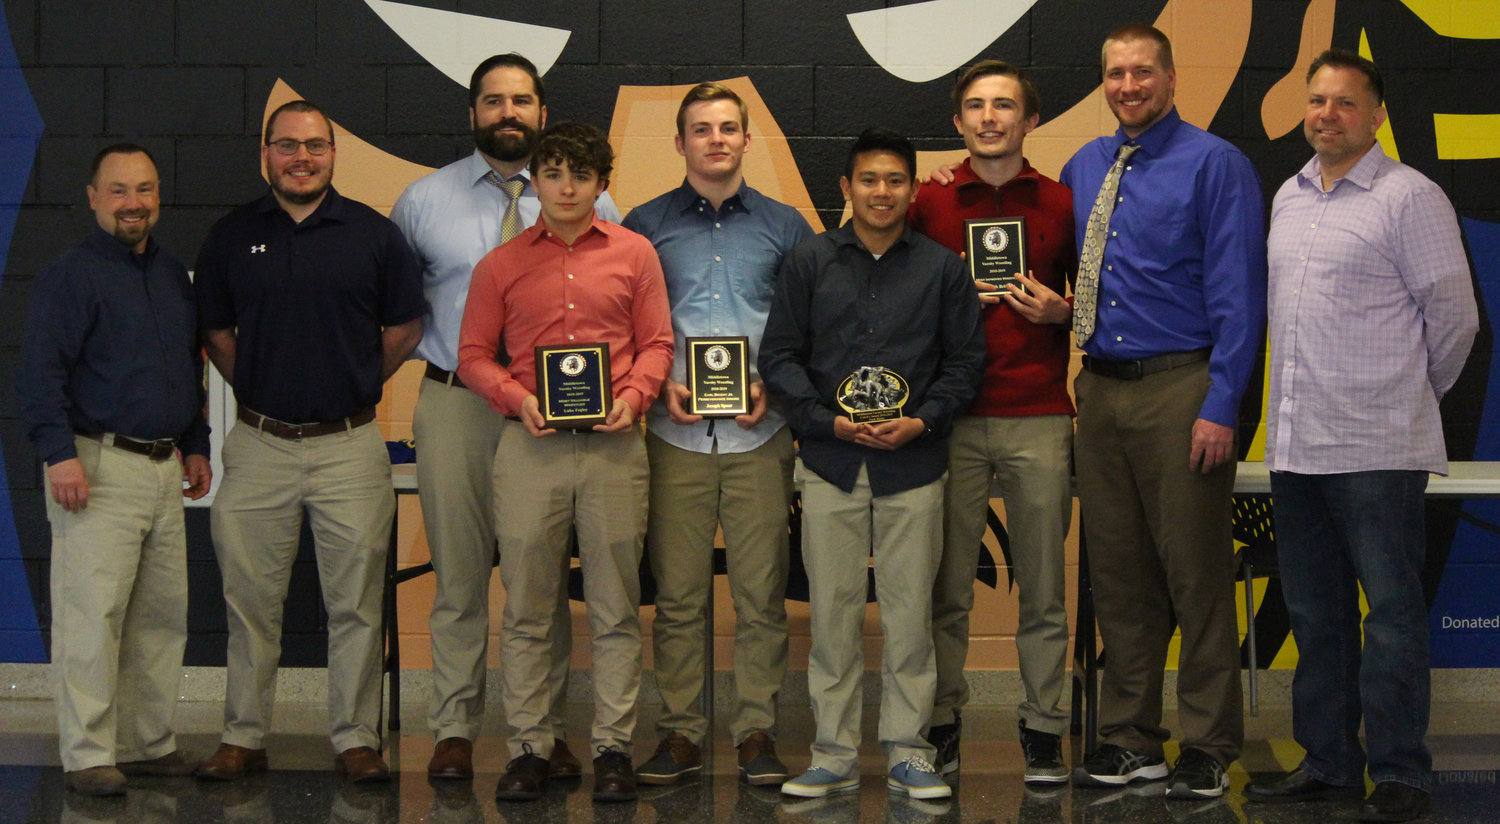 Coaches and those who were recognized at the recent Middletown Area High School wrestling banquet included coach Earl Bright IV, coach Tony Colemire, coach Dan Riggs, Luke Fegley (Outstanding Wrestler aAward), Joey Spear (Earl Bright Jr. Perseverance Award), Zach Malay (Coach's Award), Kenny Britcher (Most Improved Wrestler Award), coach Drew Heying, and coach Carl Dupes.